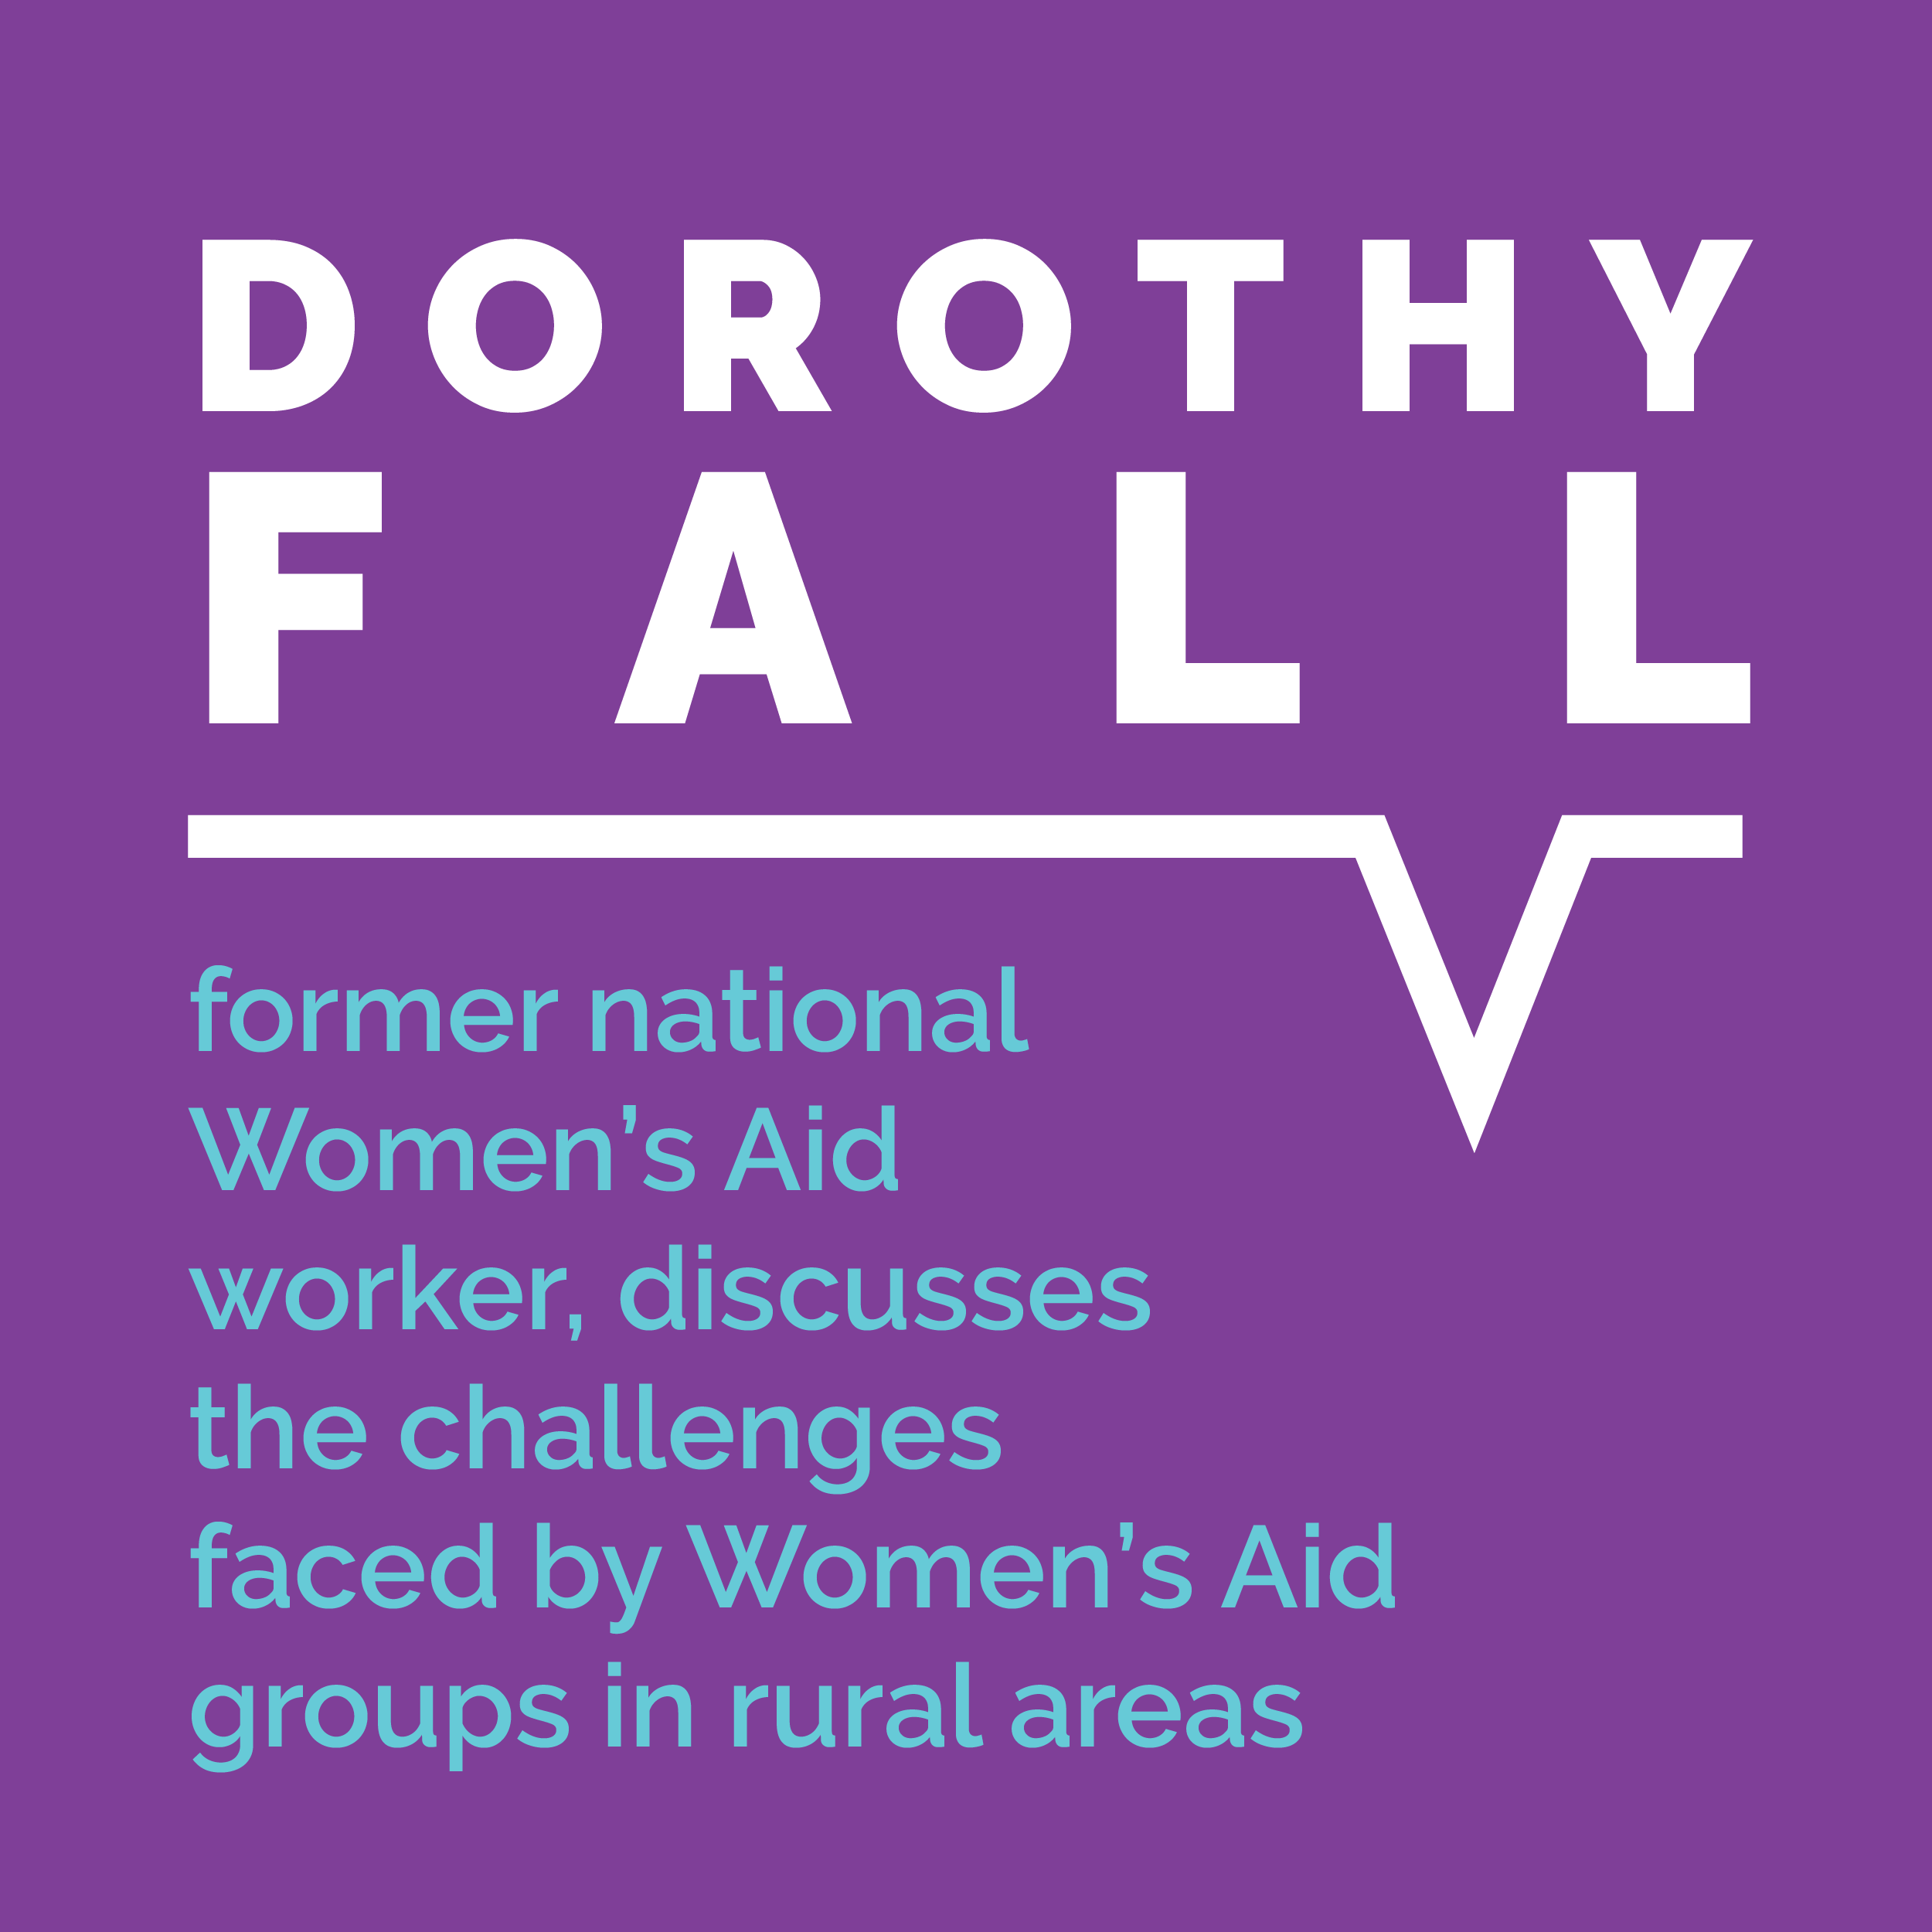 Dorothy Fall, former national Women's Aid worker, discusses the challenges faced by Women's Aid groups in rural areas